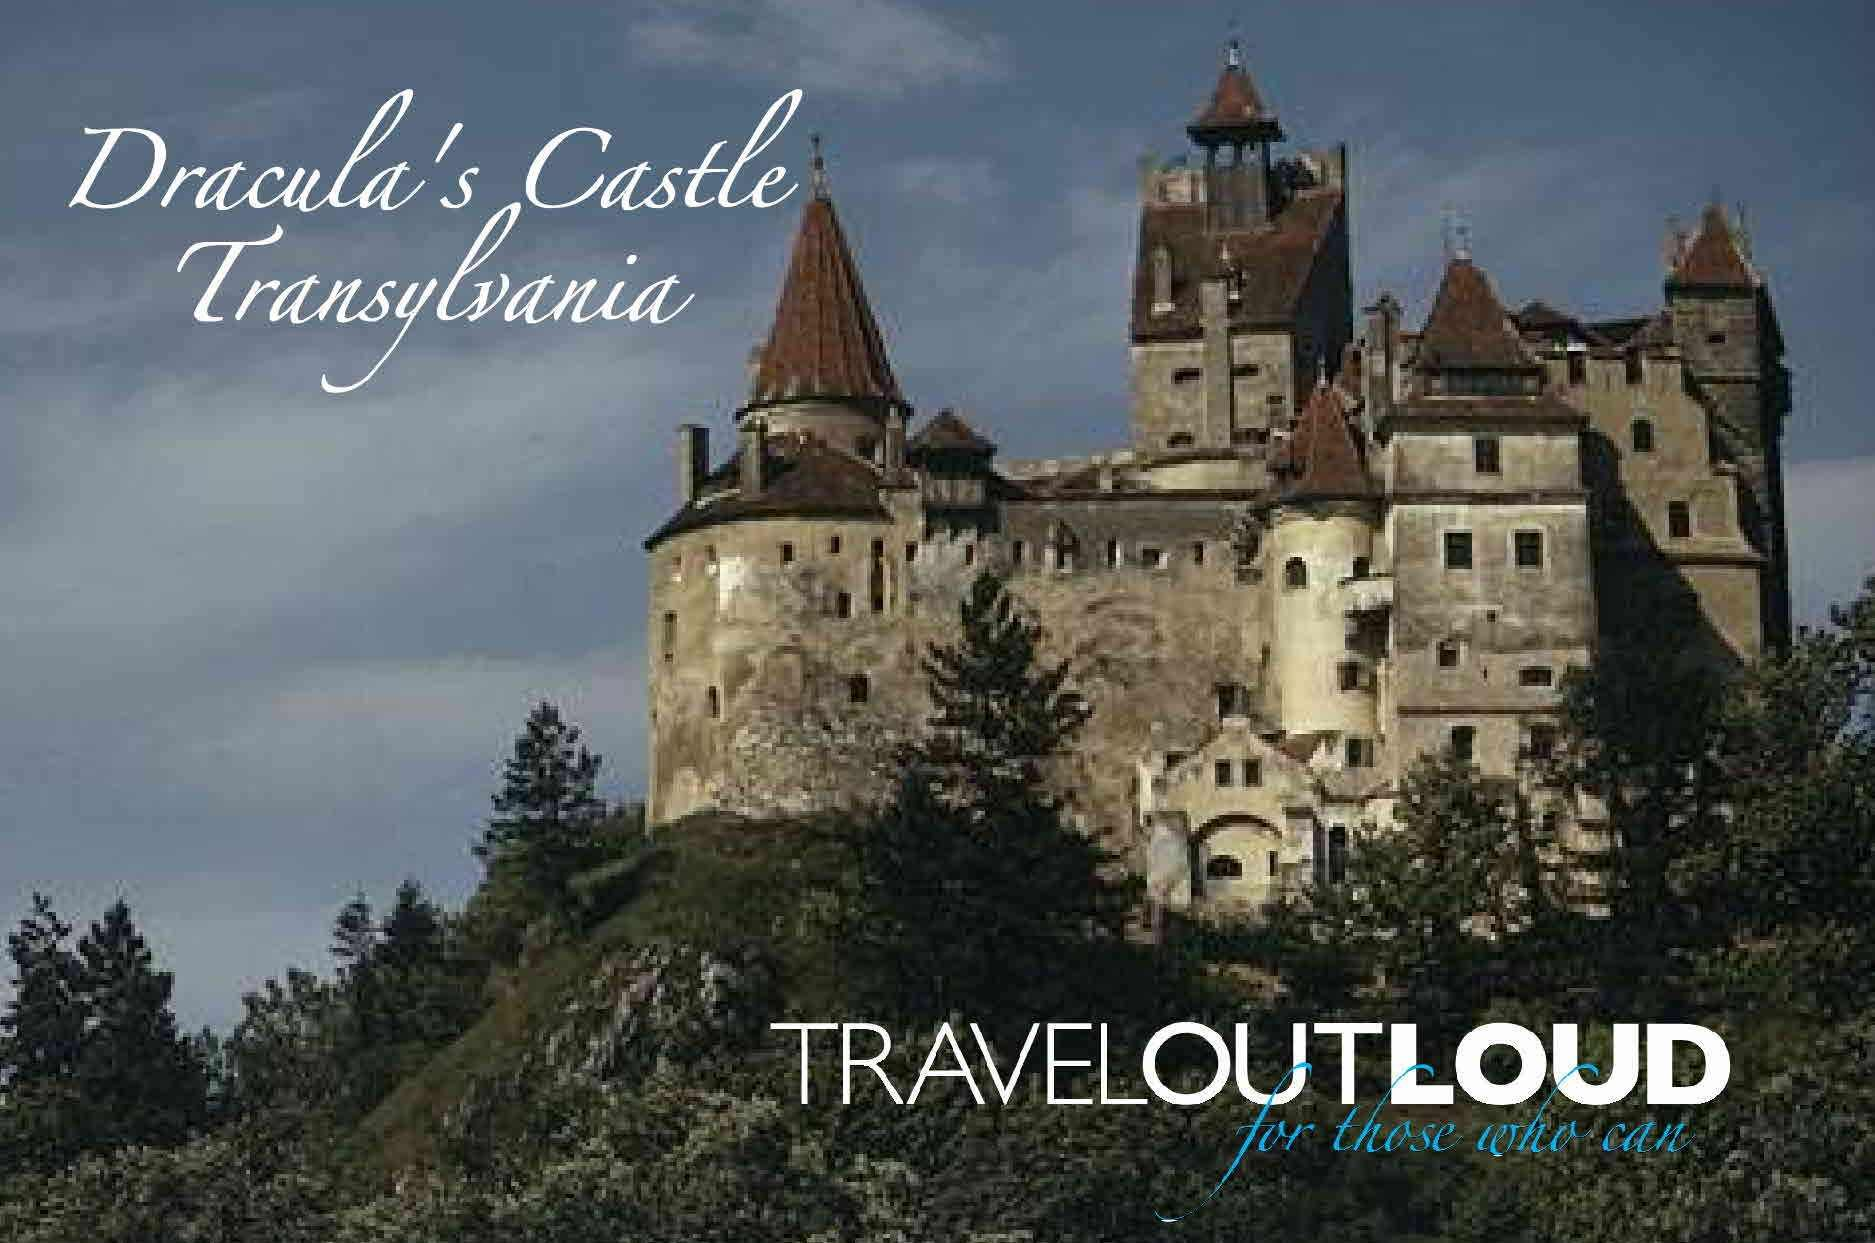 Today S Amazing Place Bran Castle Transylvania Better Known As Dracula S Castle The Gothic Fortress I European Castles Haunted Places Romanian Castles